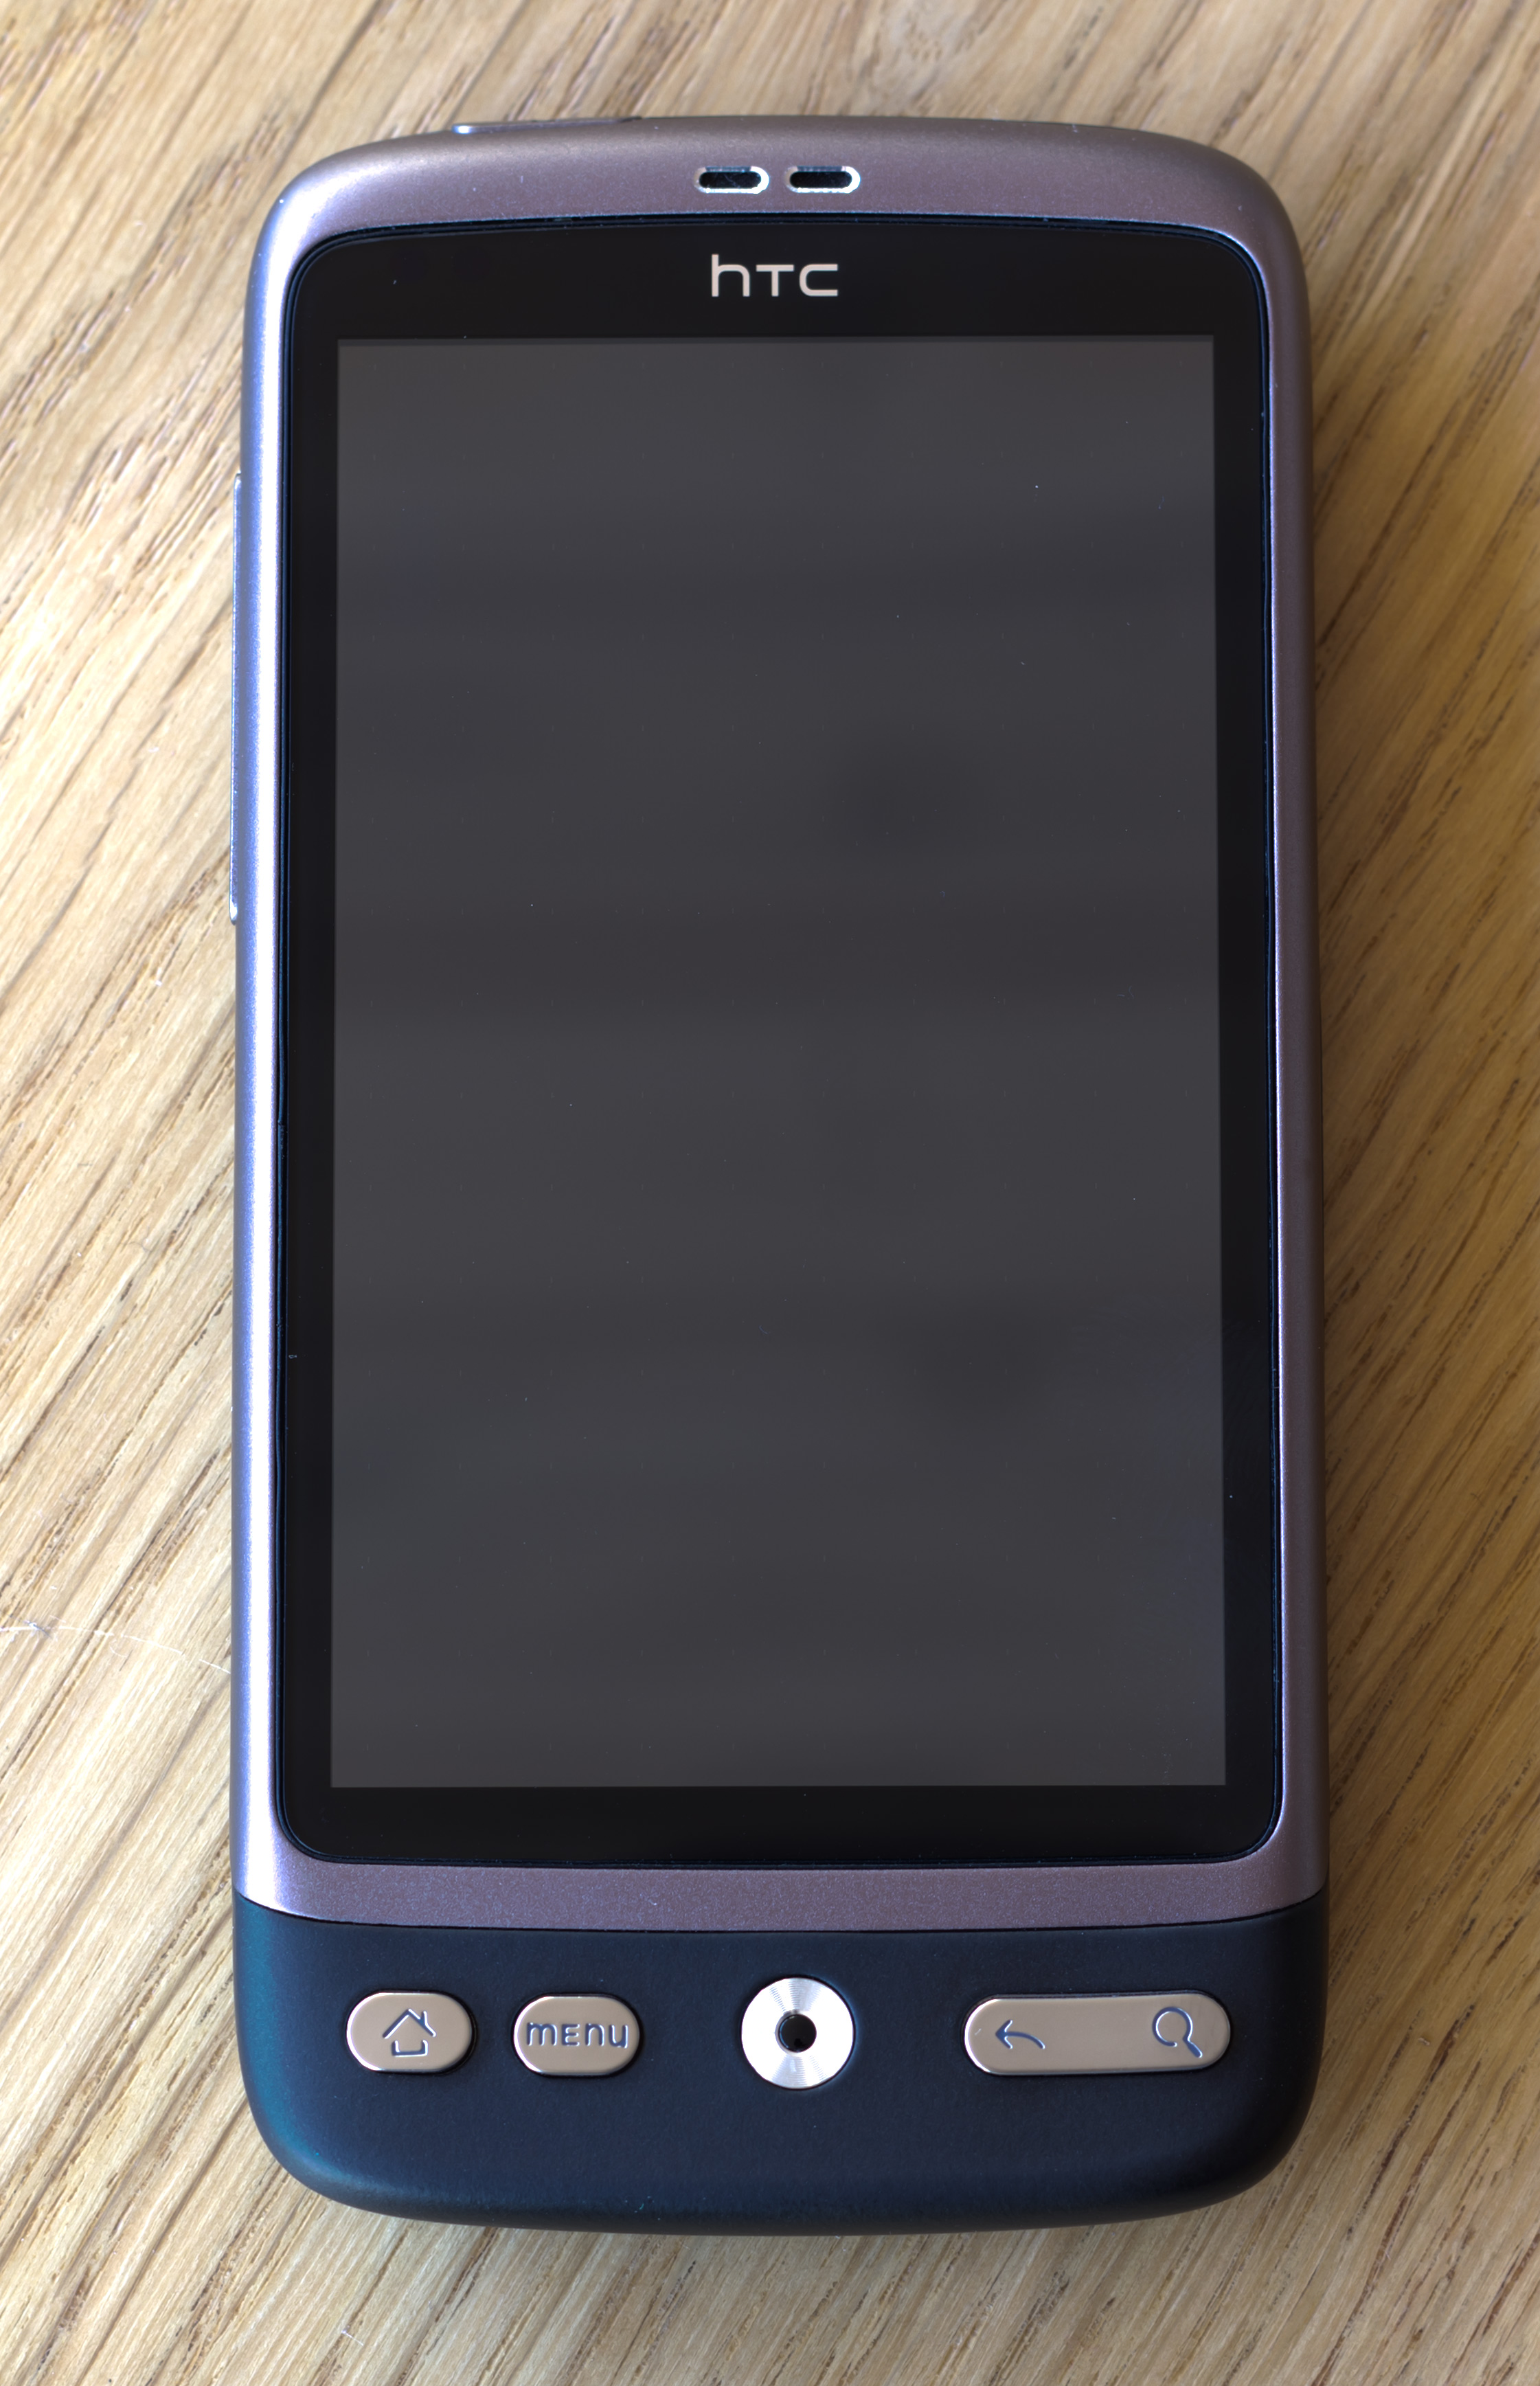 HTC Desire - front